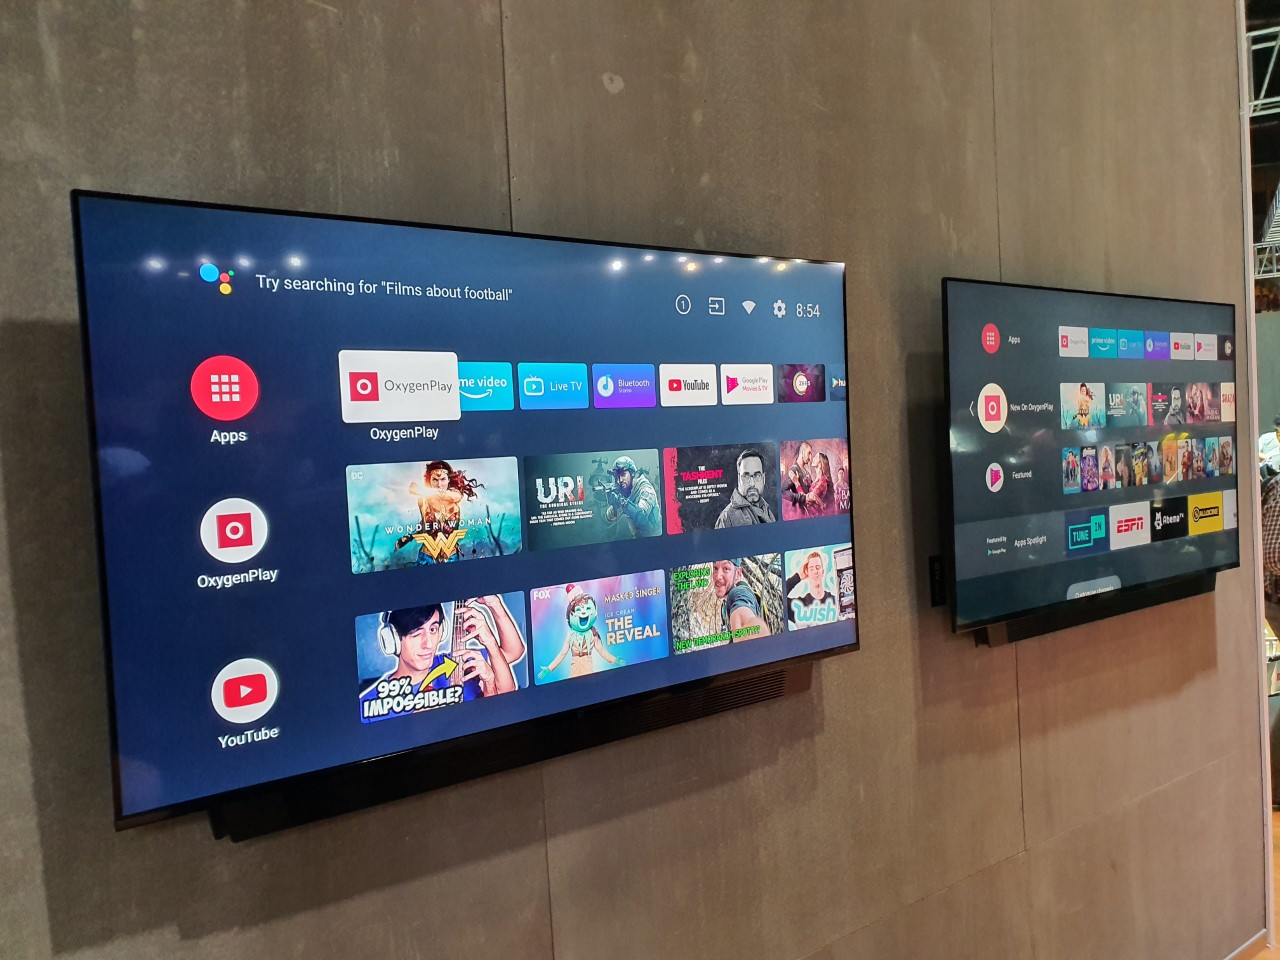 OnePlus Smart TV Offers Premium Screen Experience At Affordable Prices